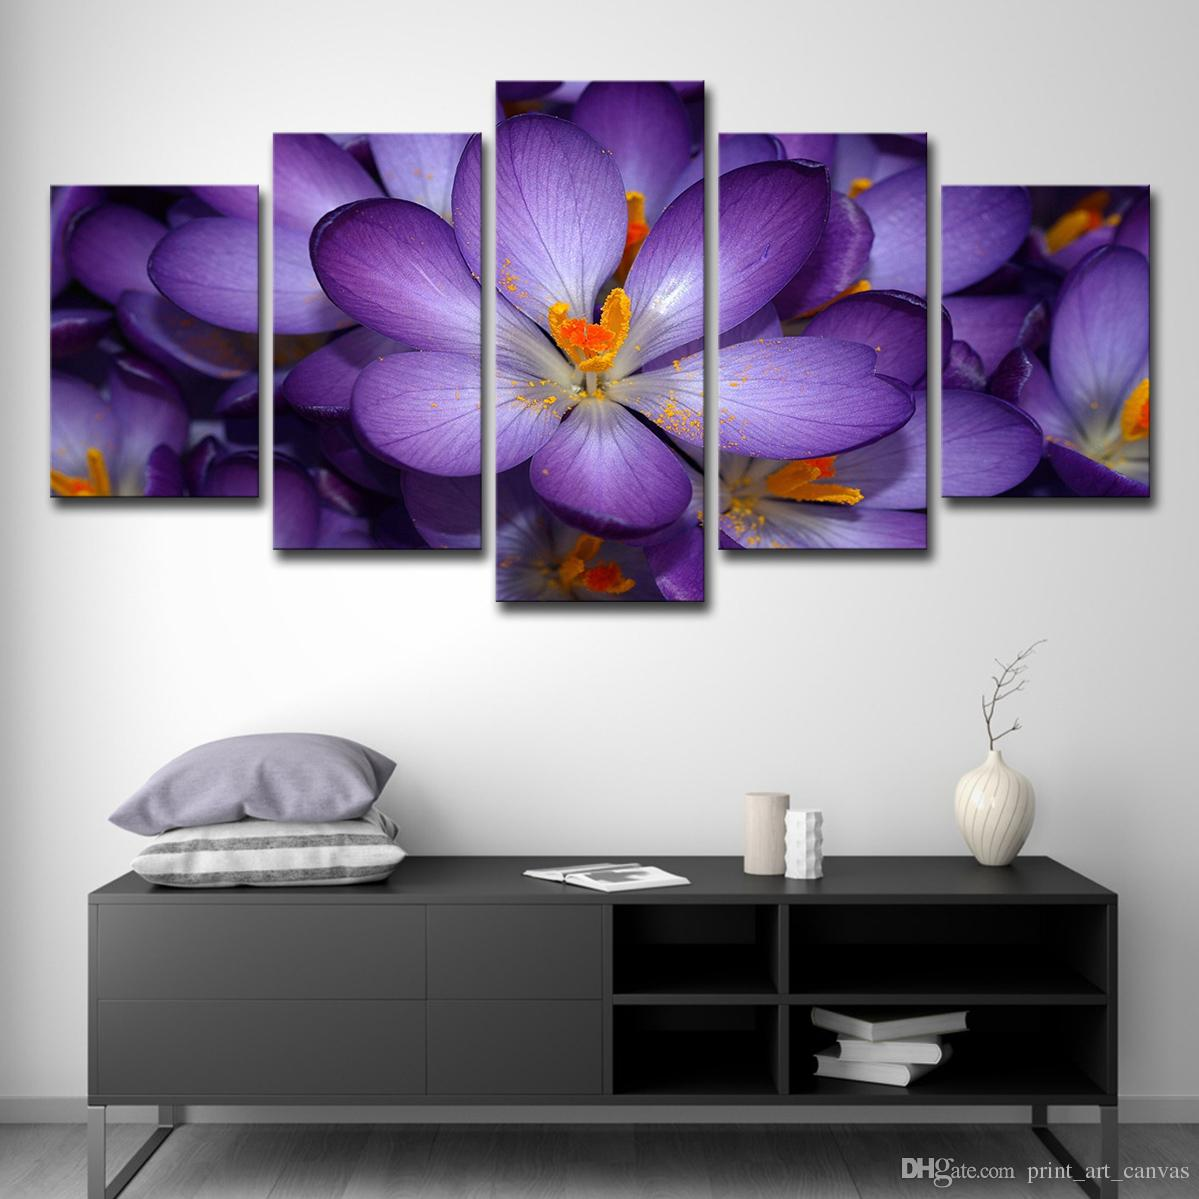 2019 home decor canvas hd prints pictures wall art beautiful purple flowers paintings for living room modular petals posters from print art canvas